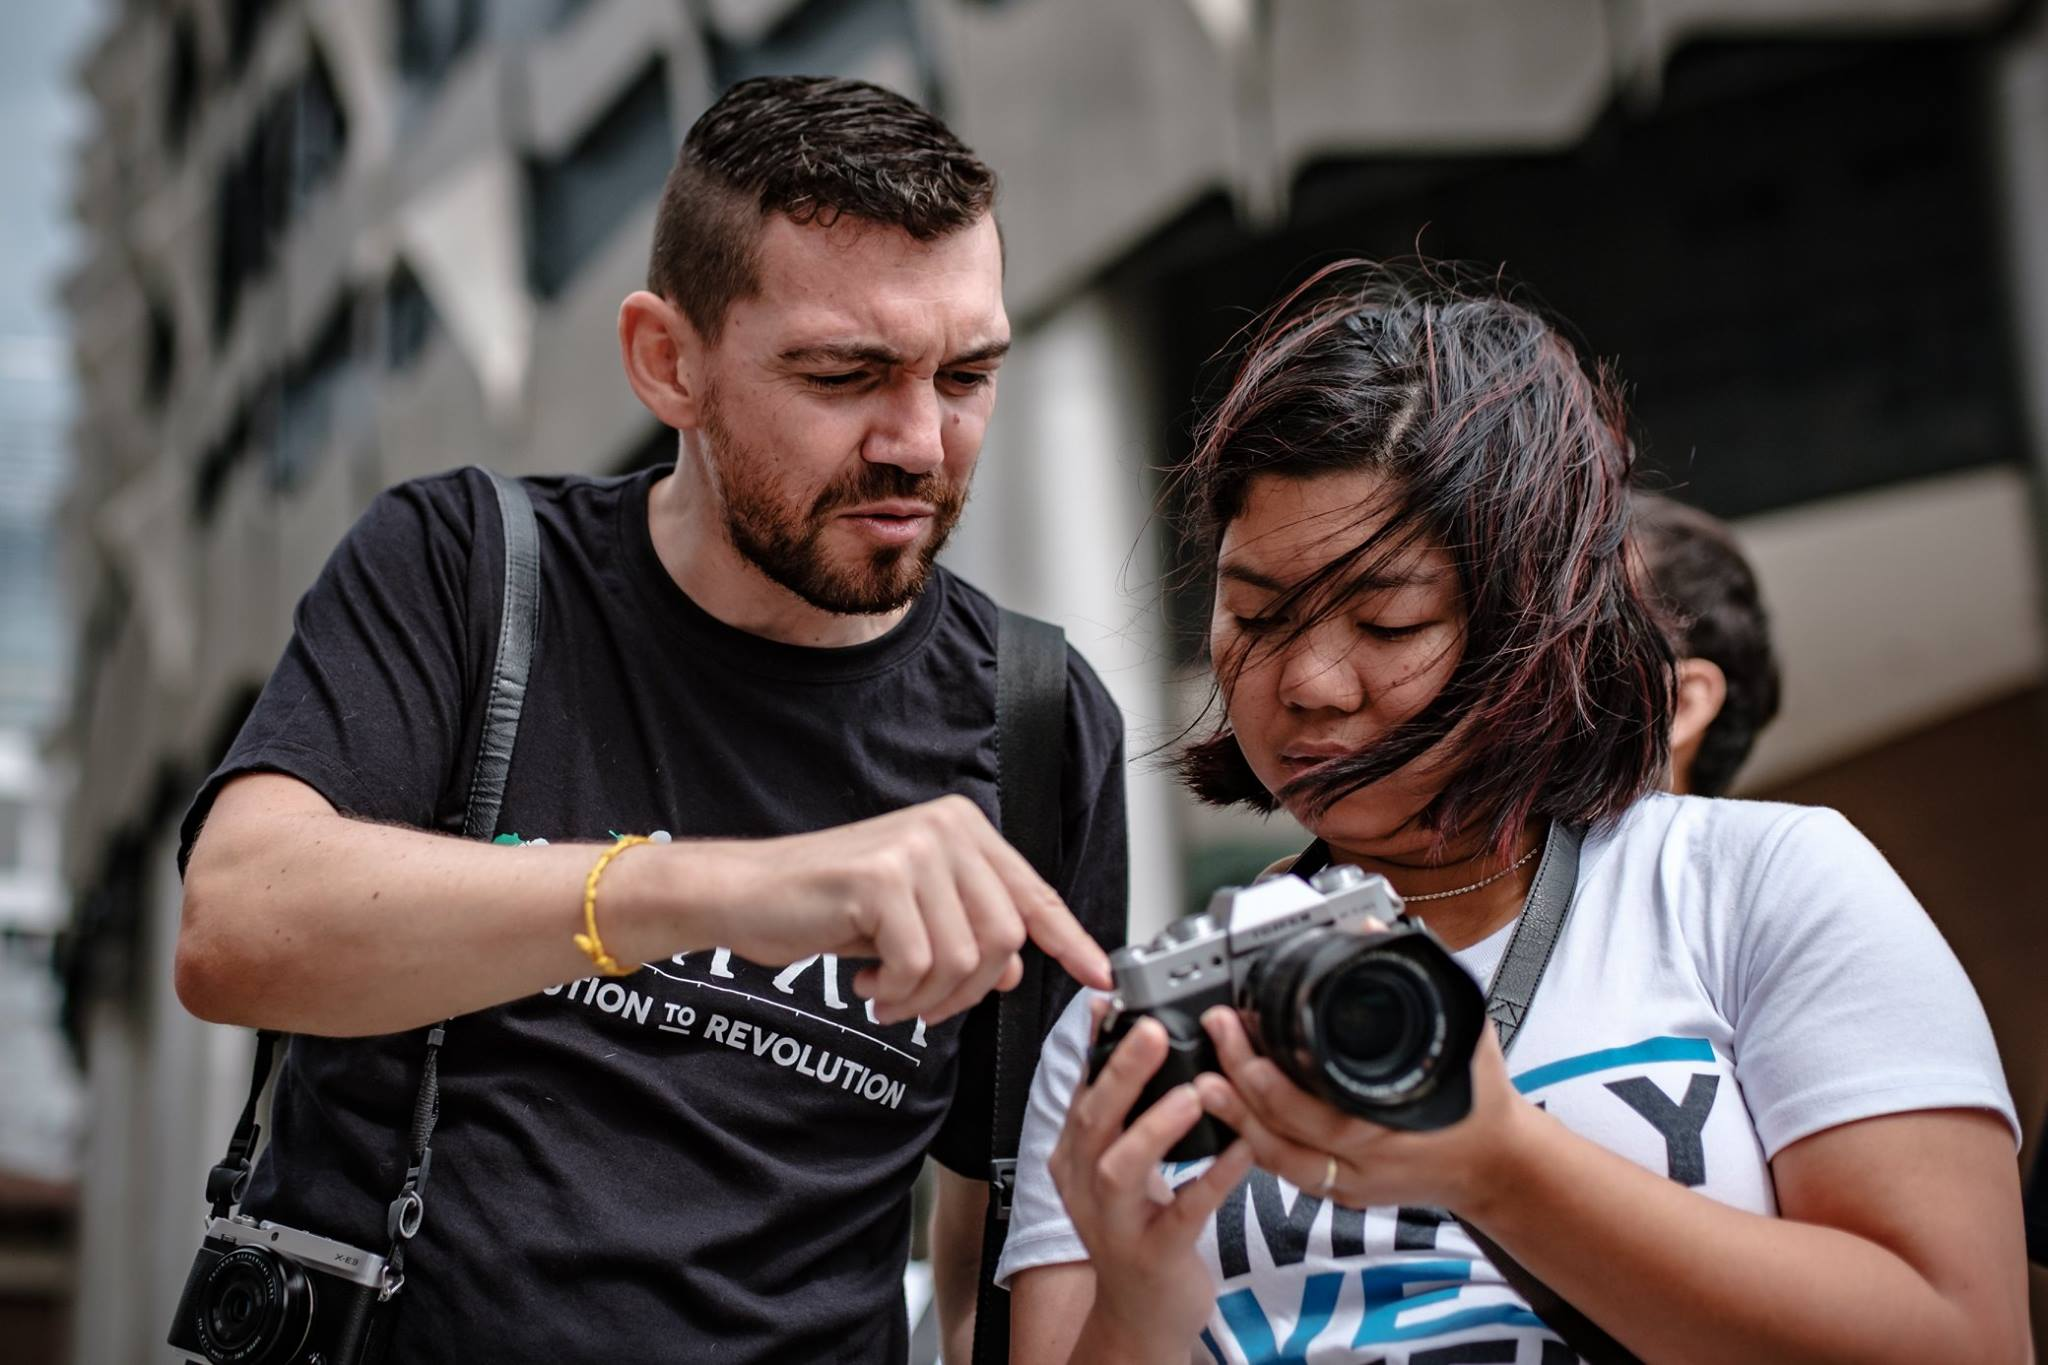 FUJIFILM Singapore workshop photography jose jeuland one to one classe 1 to 1 course lesson learn basic photographer